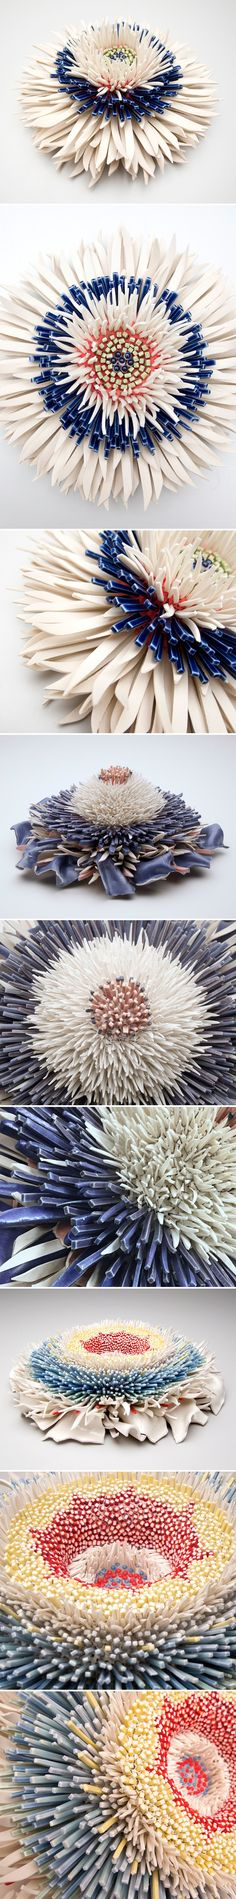 ceramic flowers by z